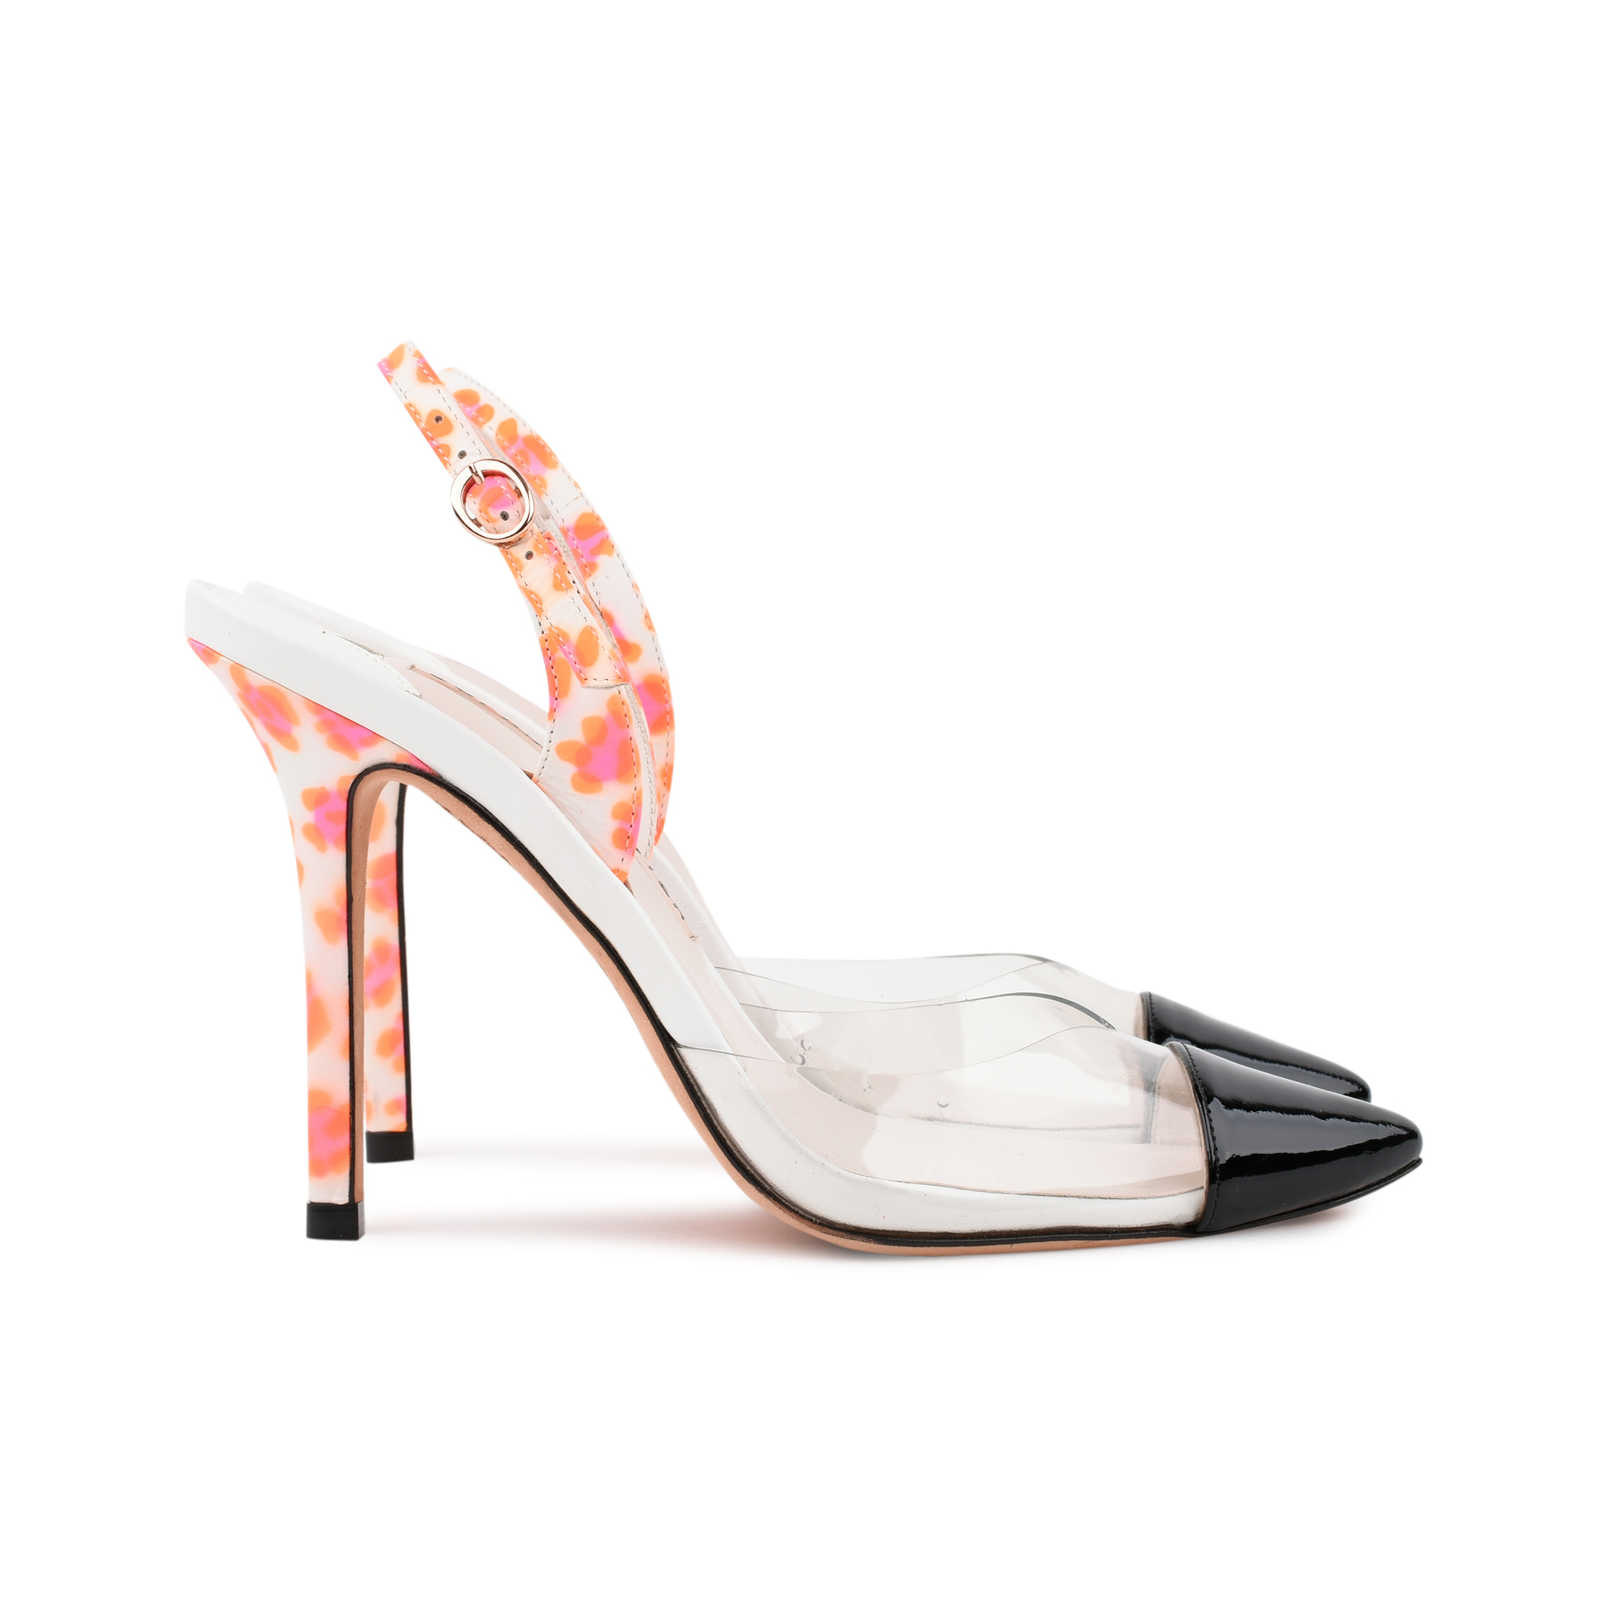 38790e685c6 ... Authentic Second Hand Sophia Webster Daria Point-Toe Pumps  (PSS-080-00234 ...